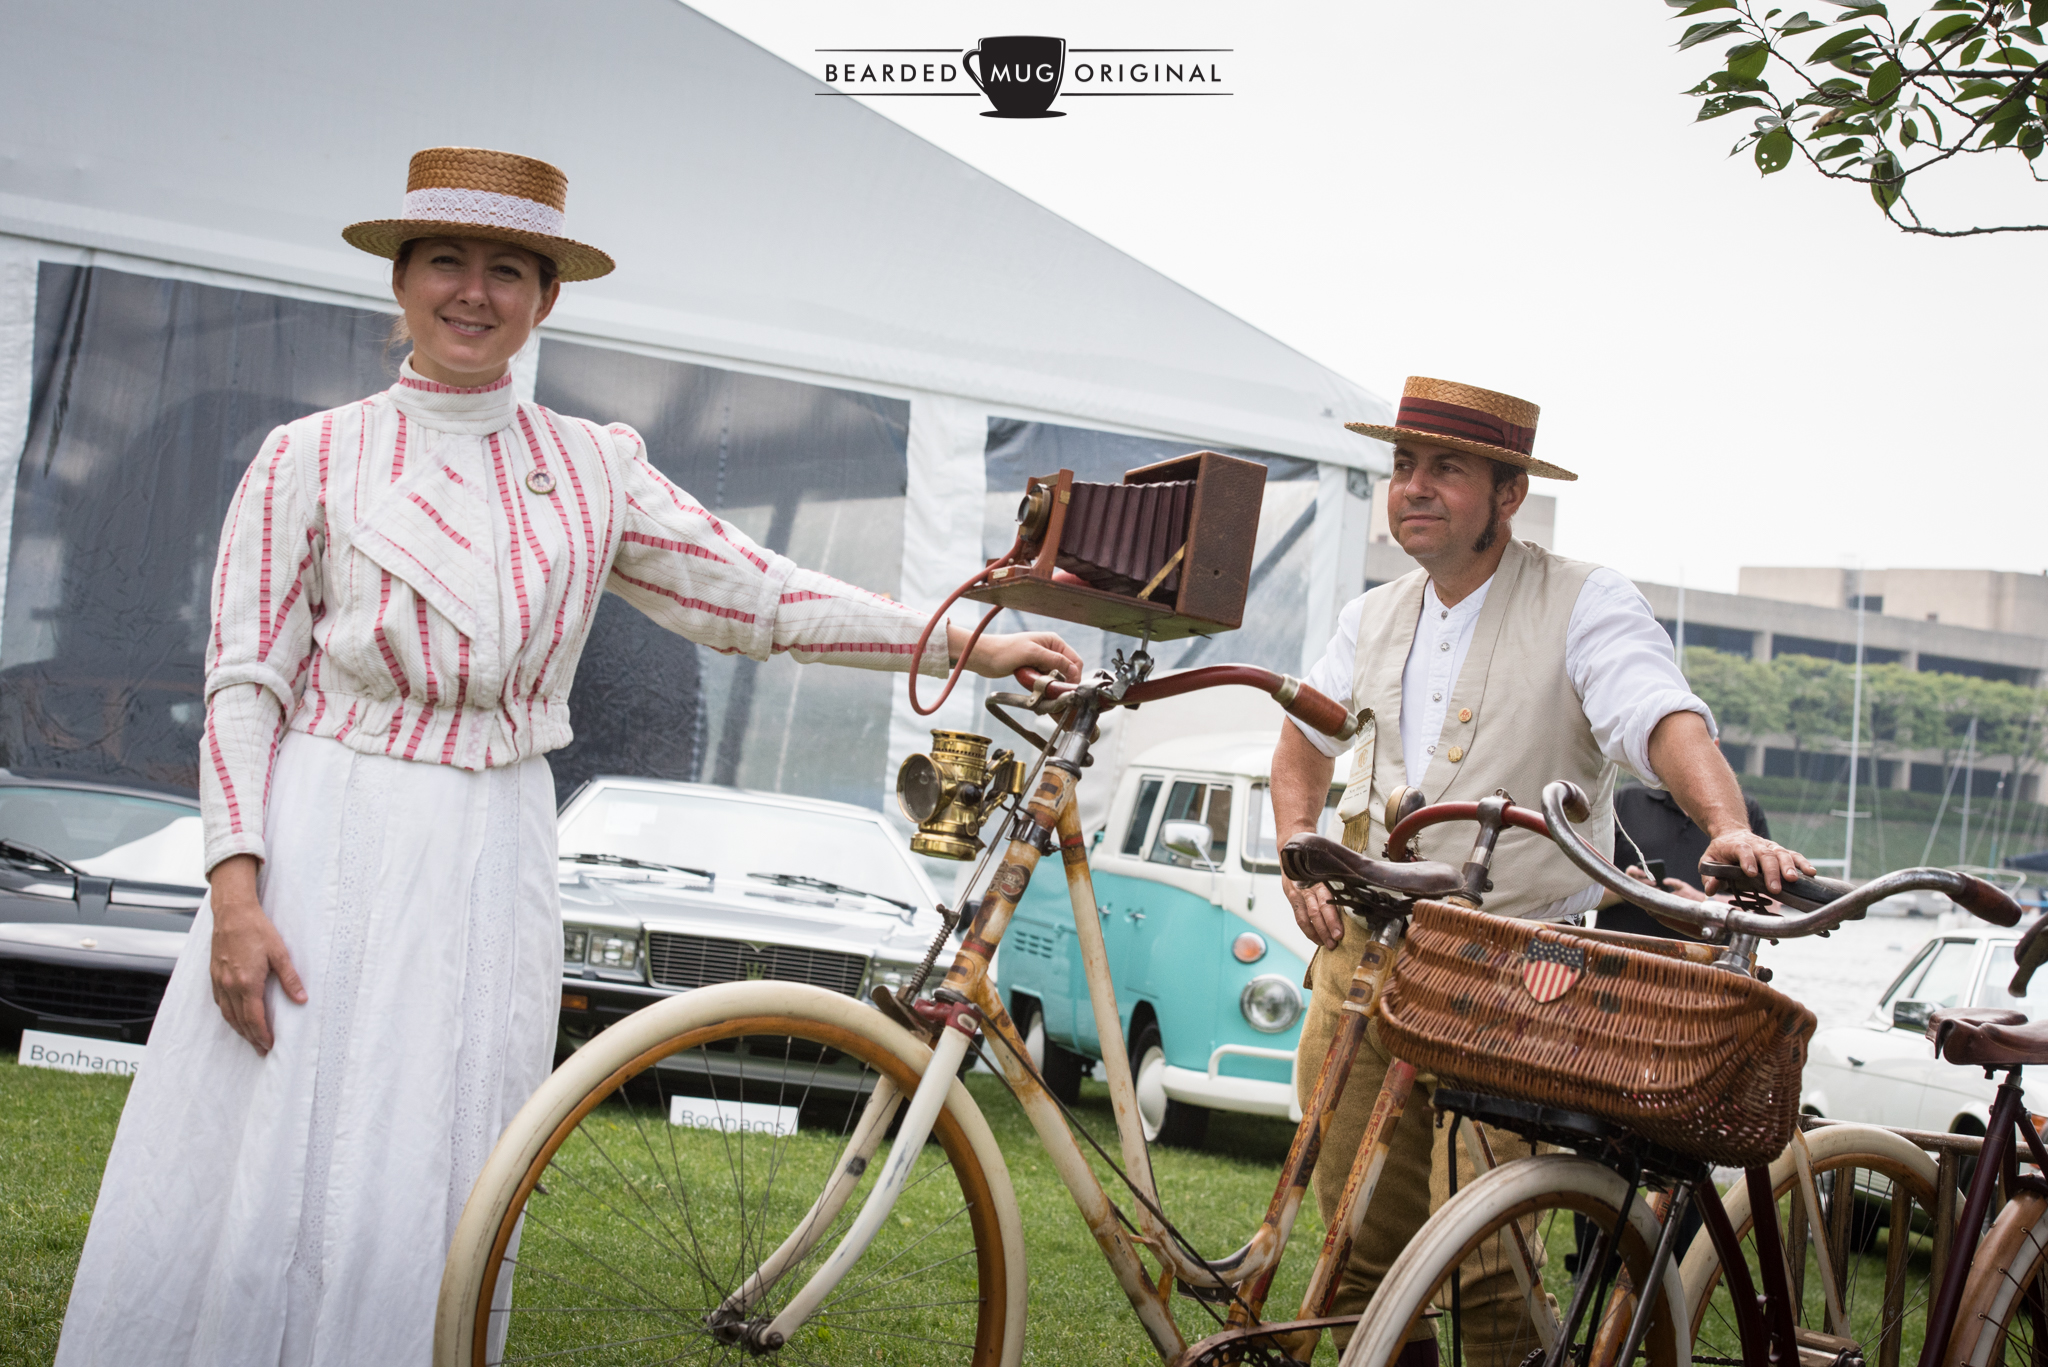 Concours Americana highlighted the domestic fashion of the times, along with bicycles built locally in places like Chicago. Check out the earliest rendition of the Go-Pro mounted on a Western Wheel Works Crescent Bicycle.